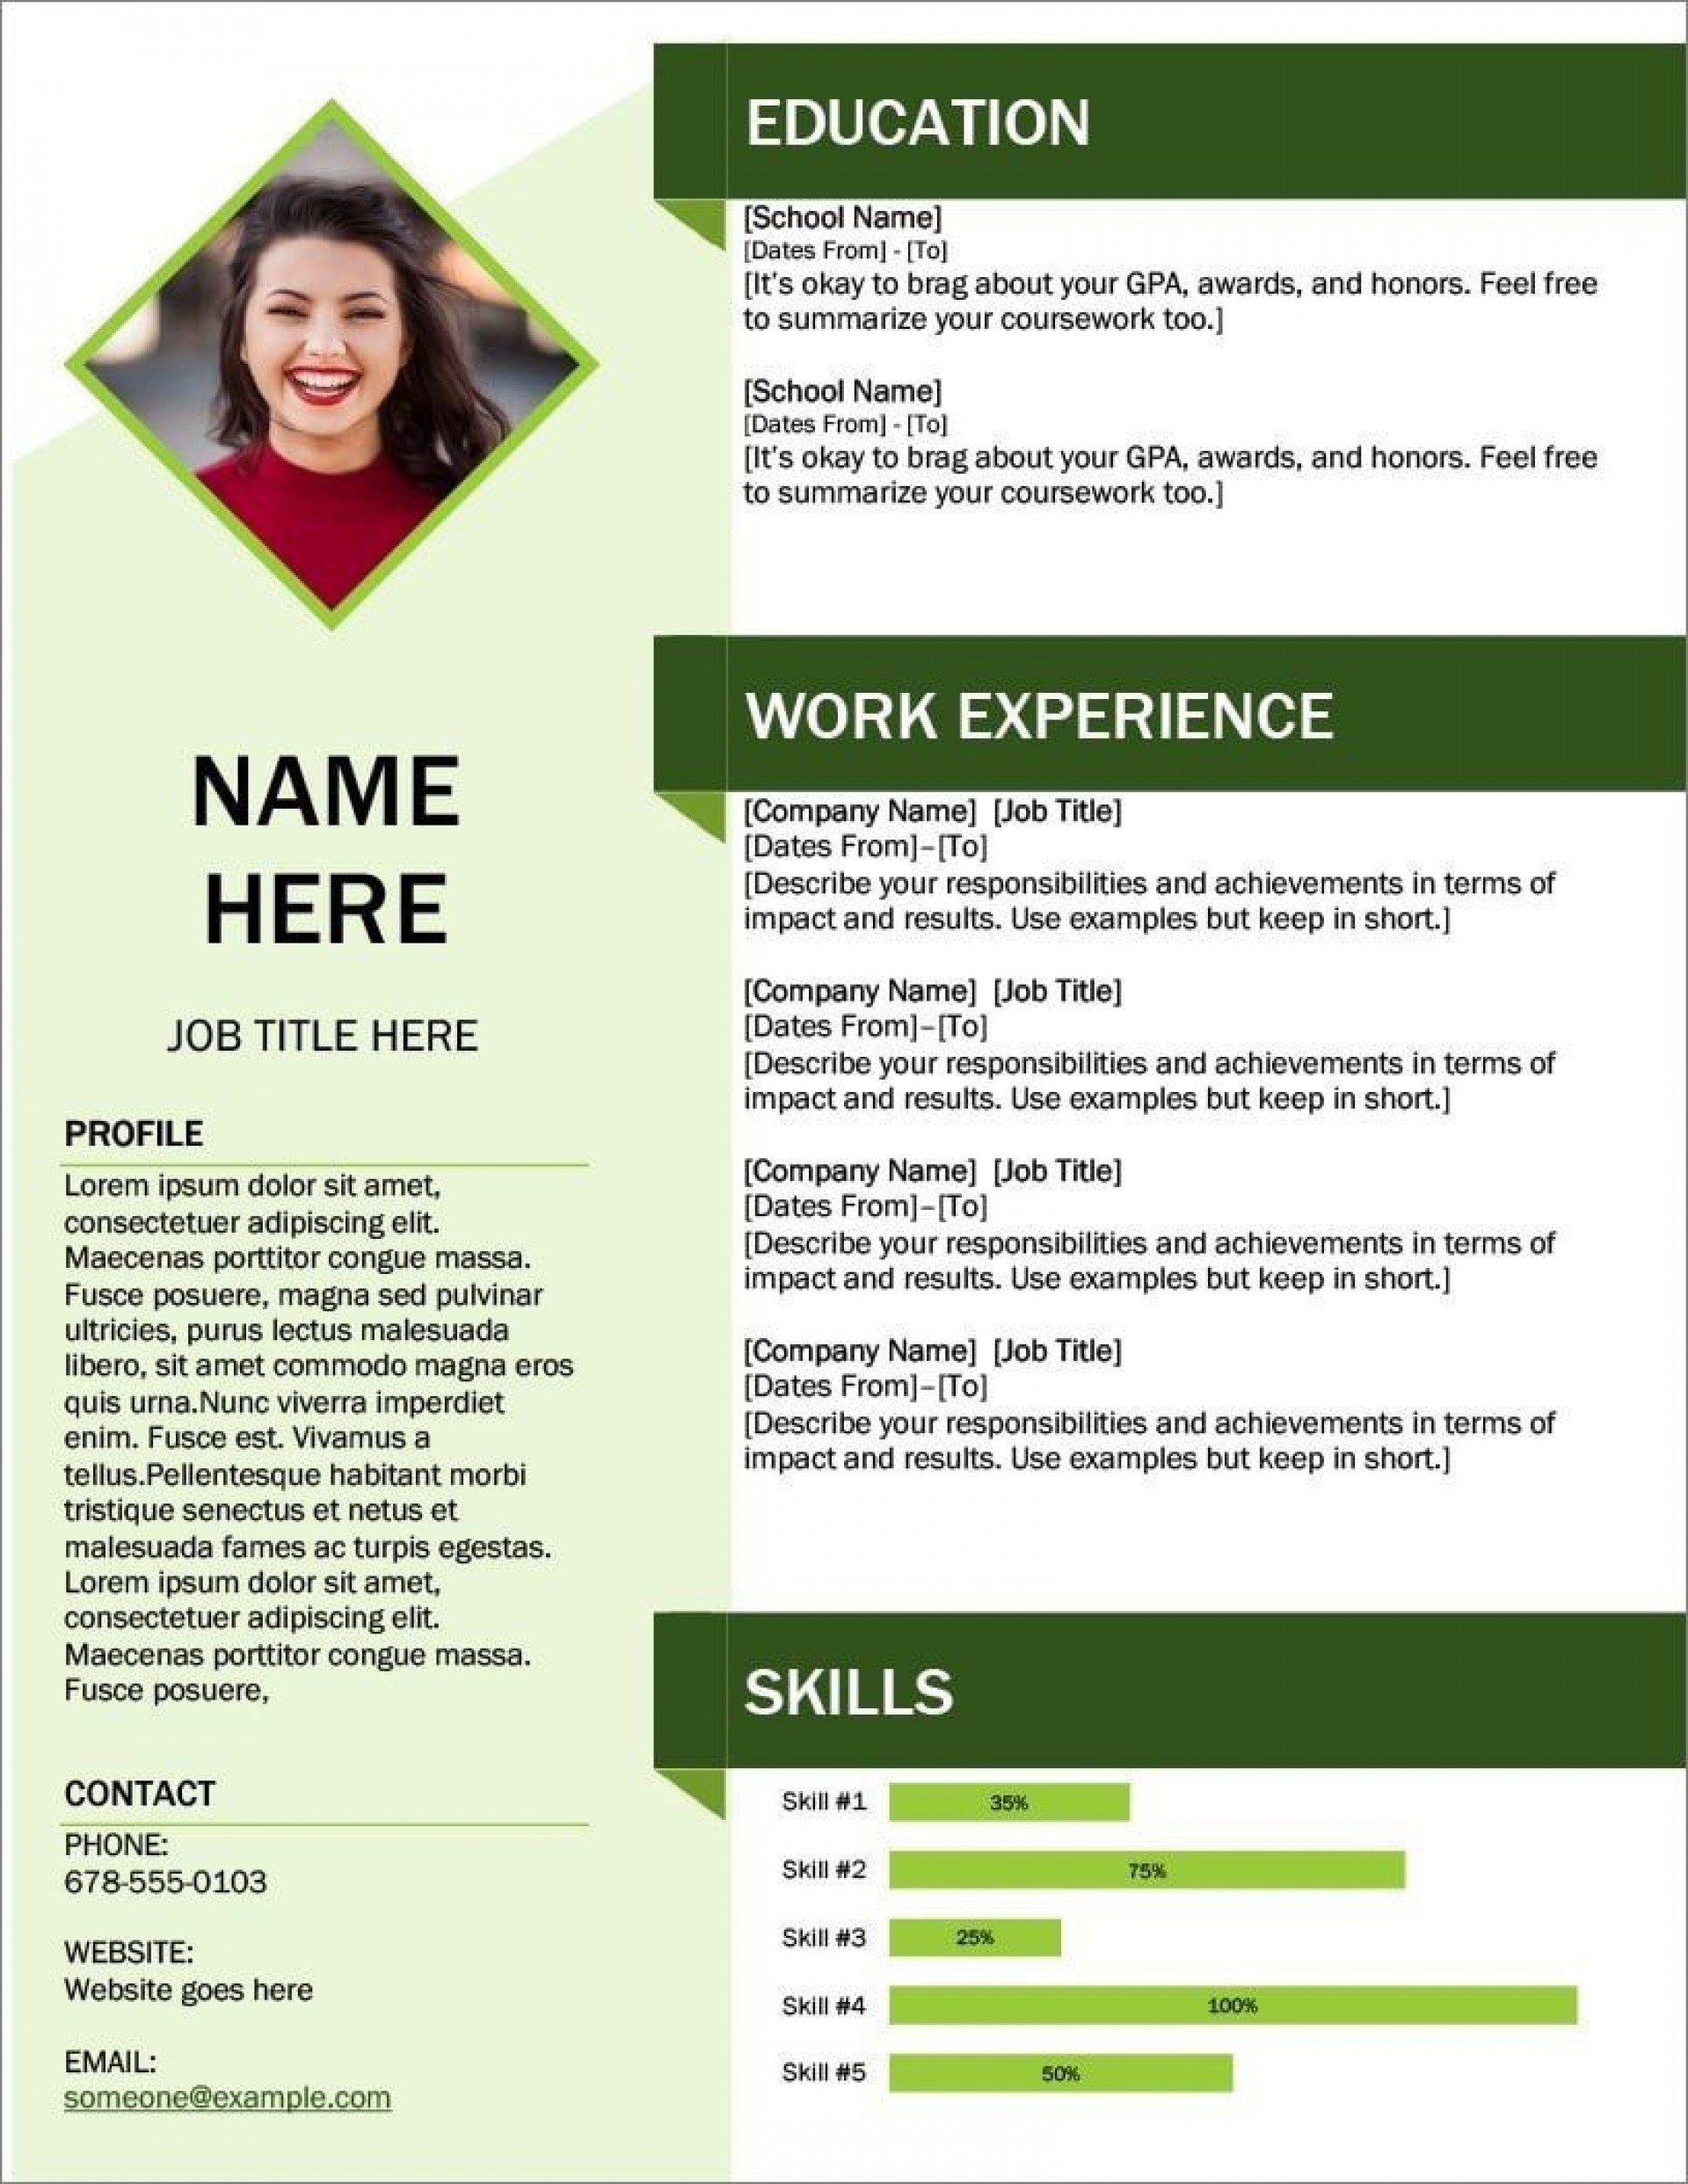 007 Shocking Resume Template M Word Free Idea  Modern Microsoft Download 2010 Cv With Picture1920